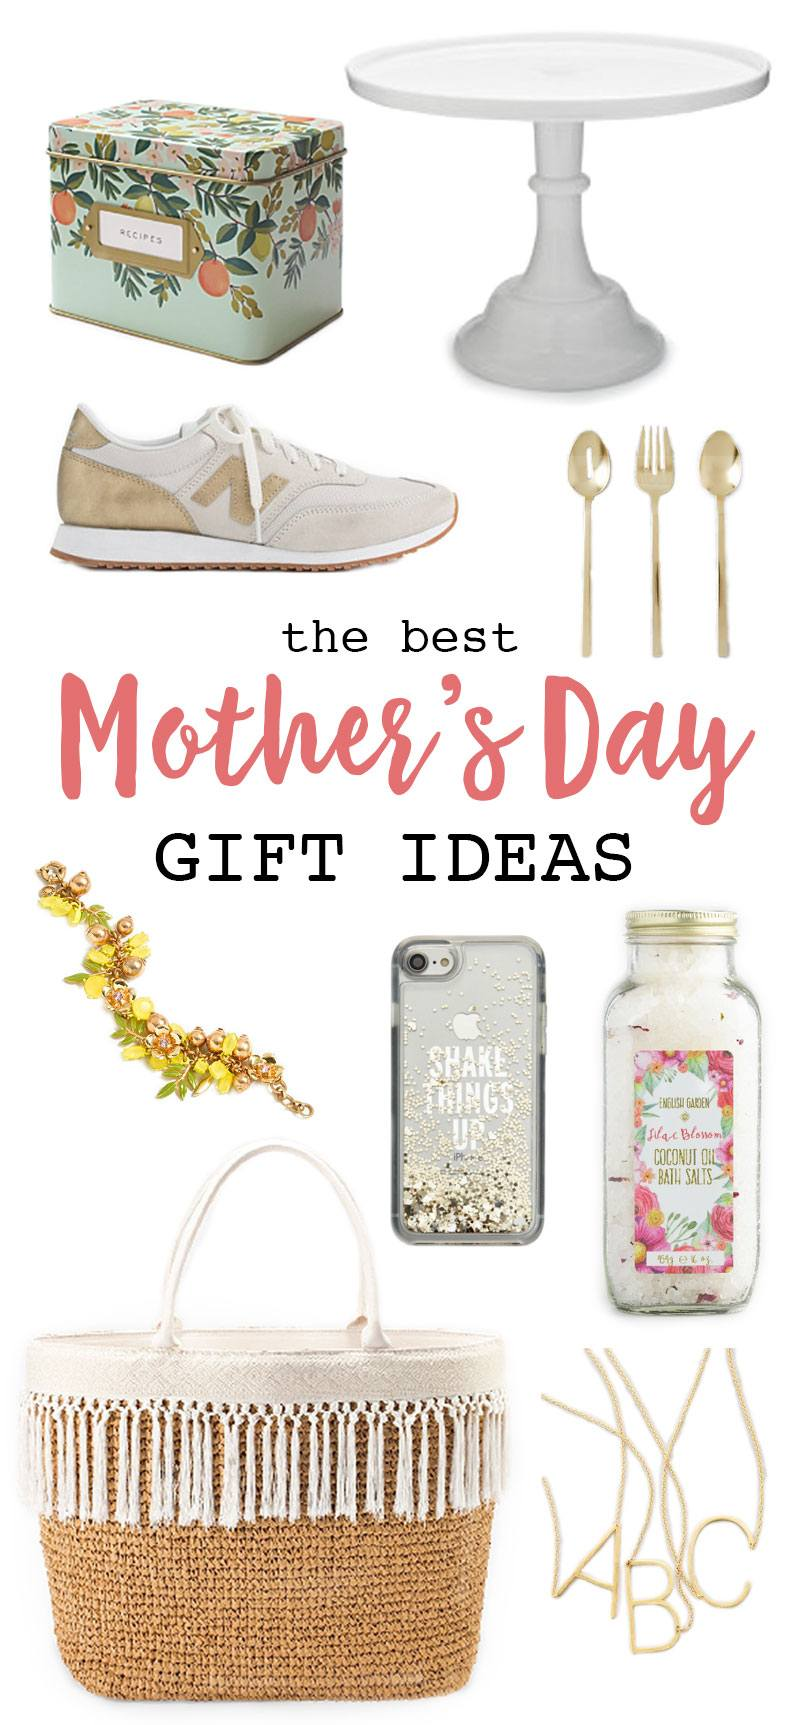 The Best Mother's Day Gift Ideas by Lindi Haws of Love The Day